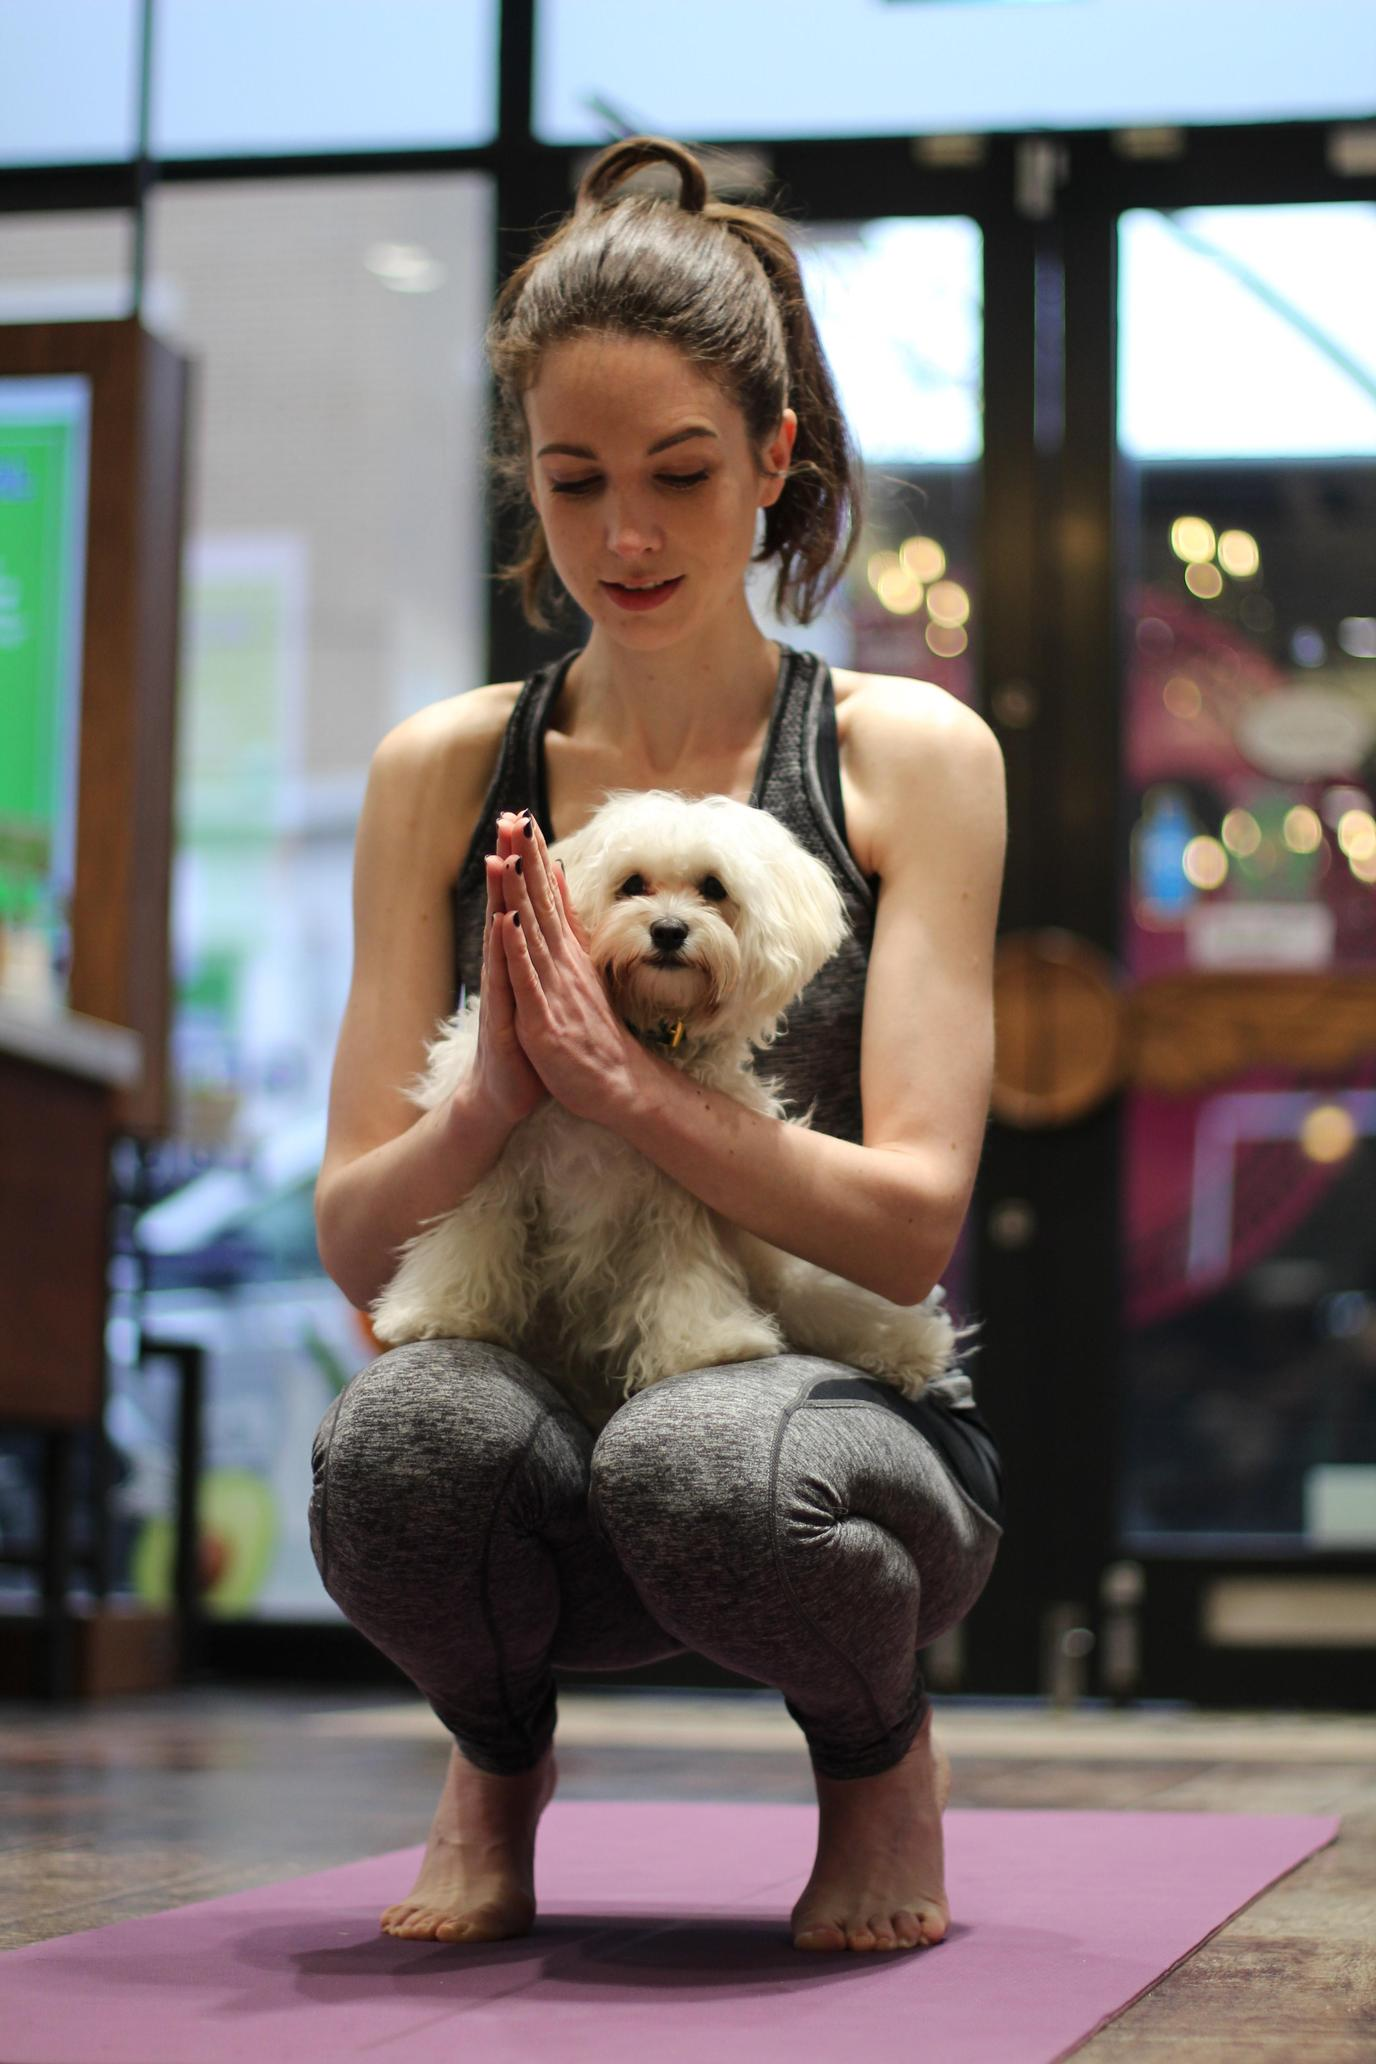 Sign up for Doga classes with your pup.